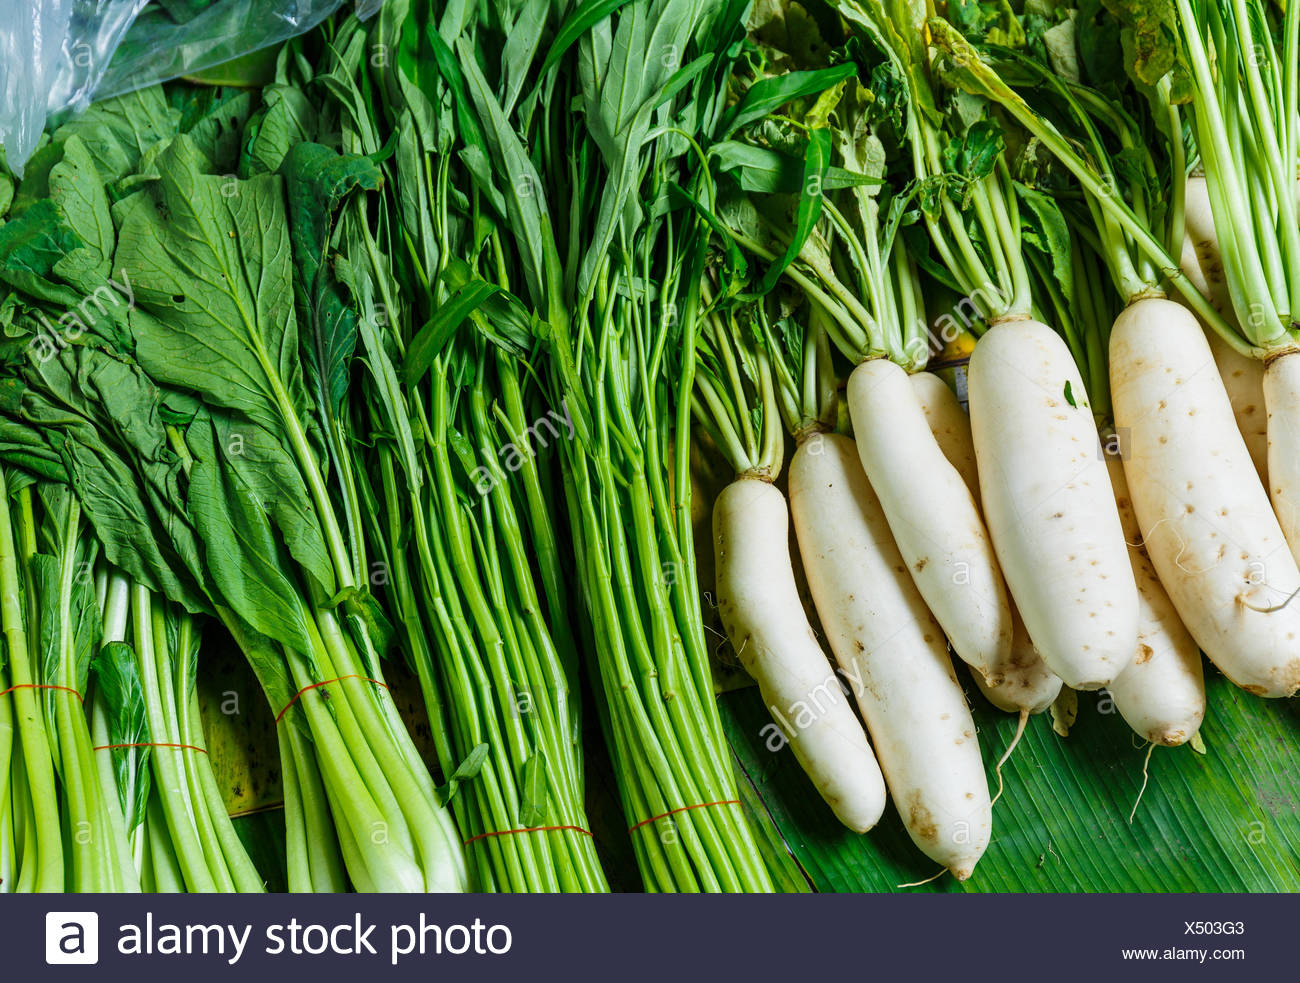 Vegetable for sell in food market - Stock Image